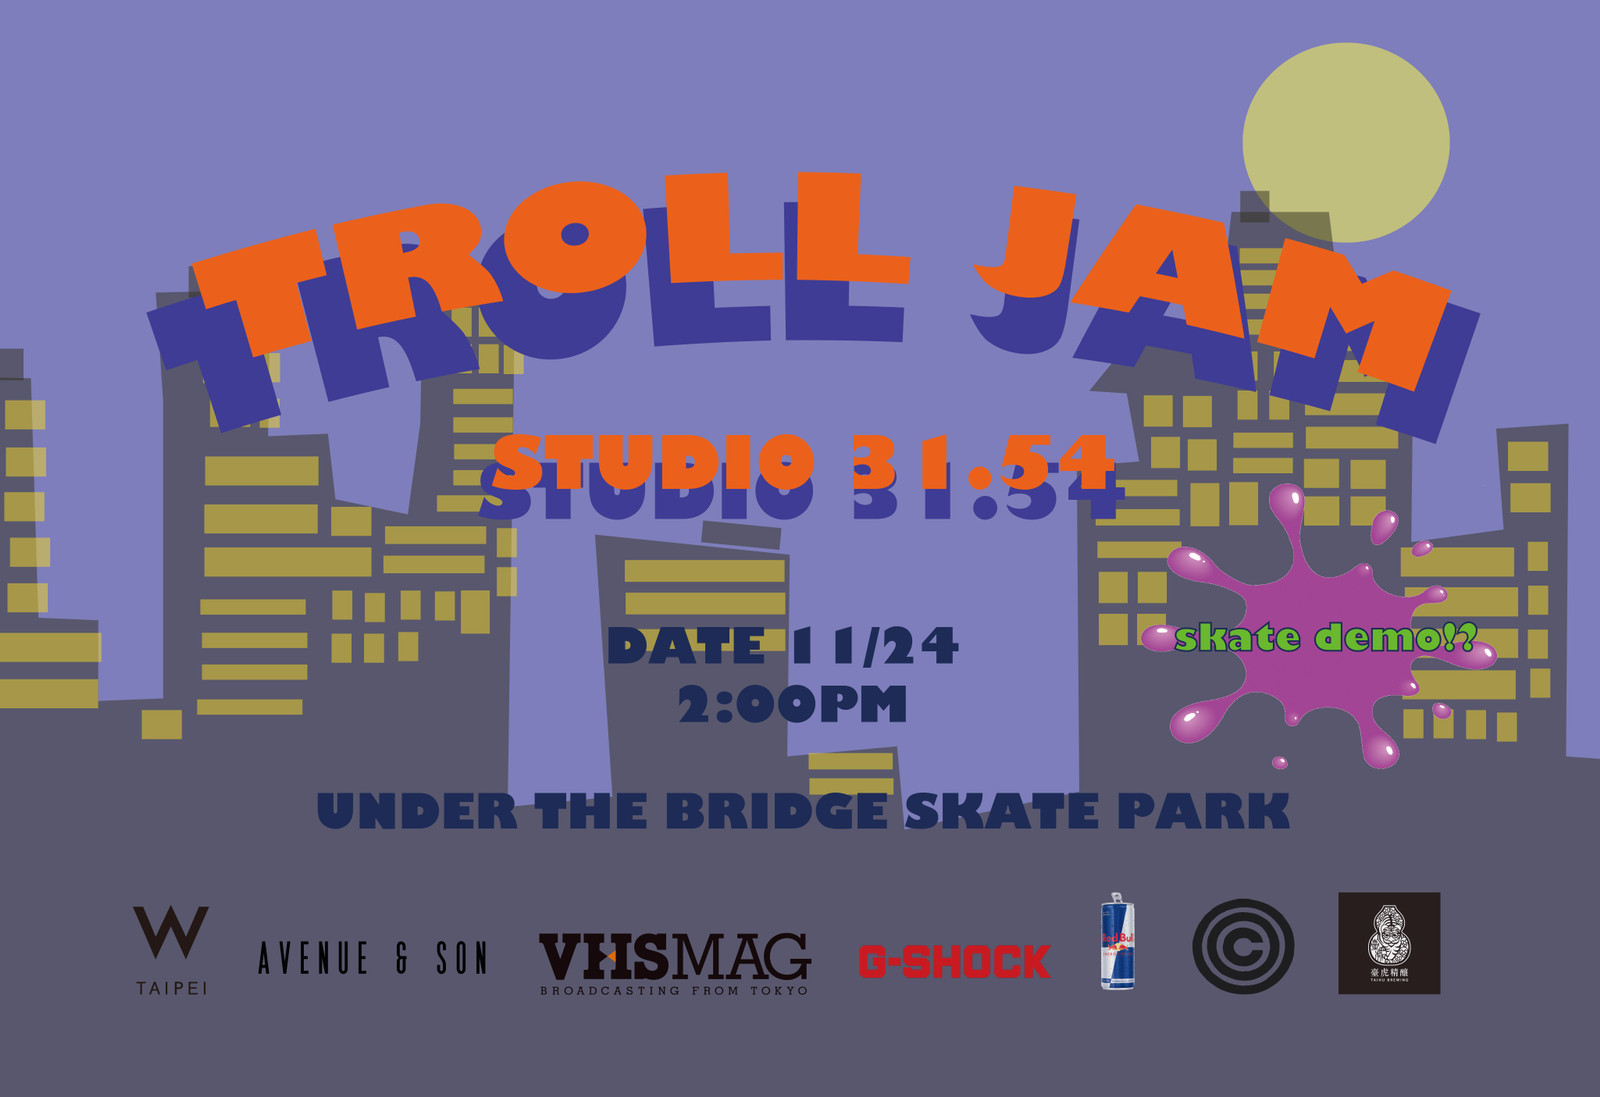 橋下集合!Troll Jam By Studio31.54 企劃本週始動